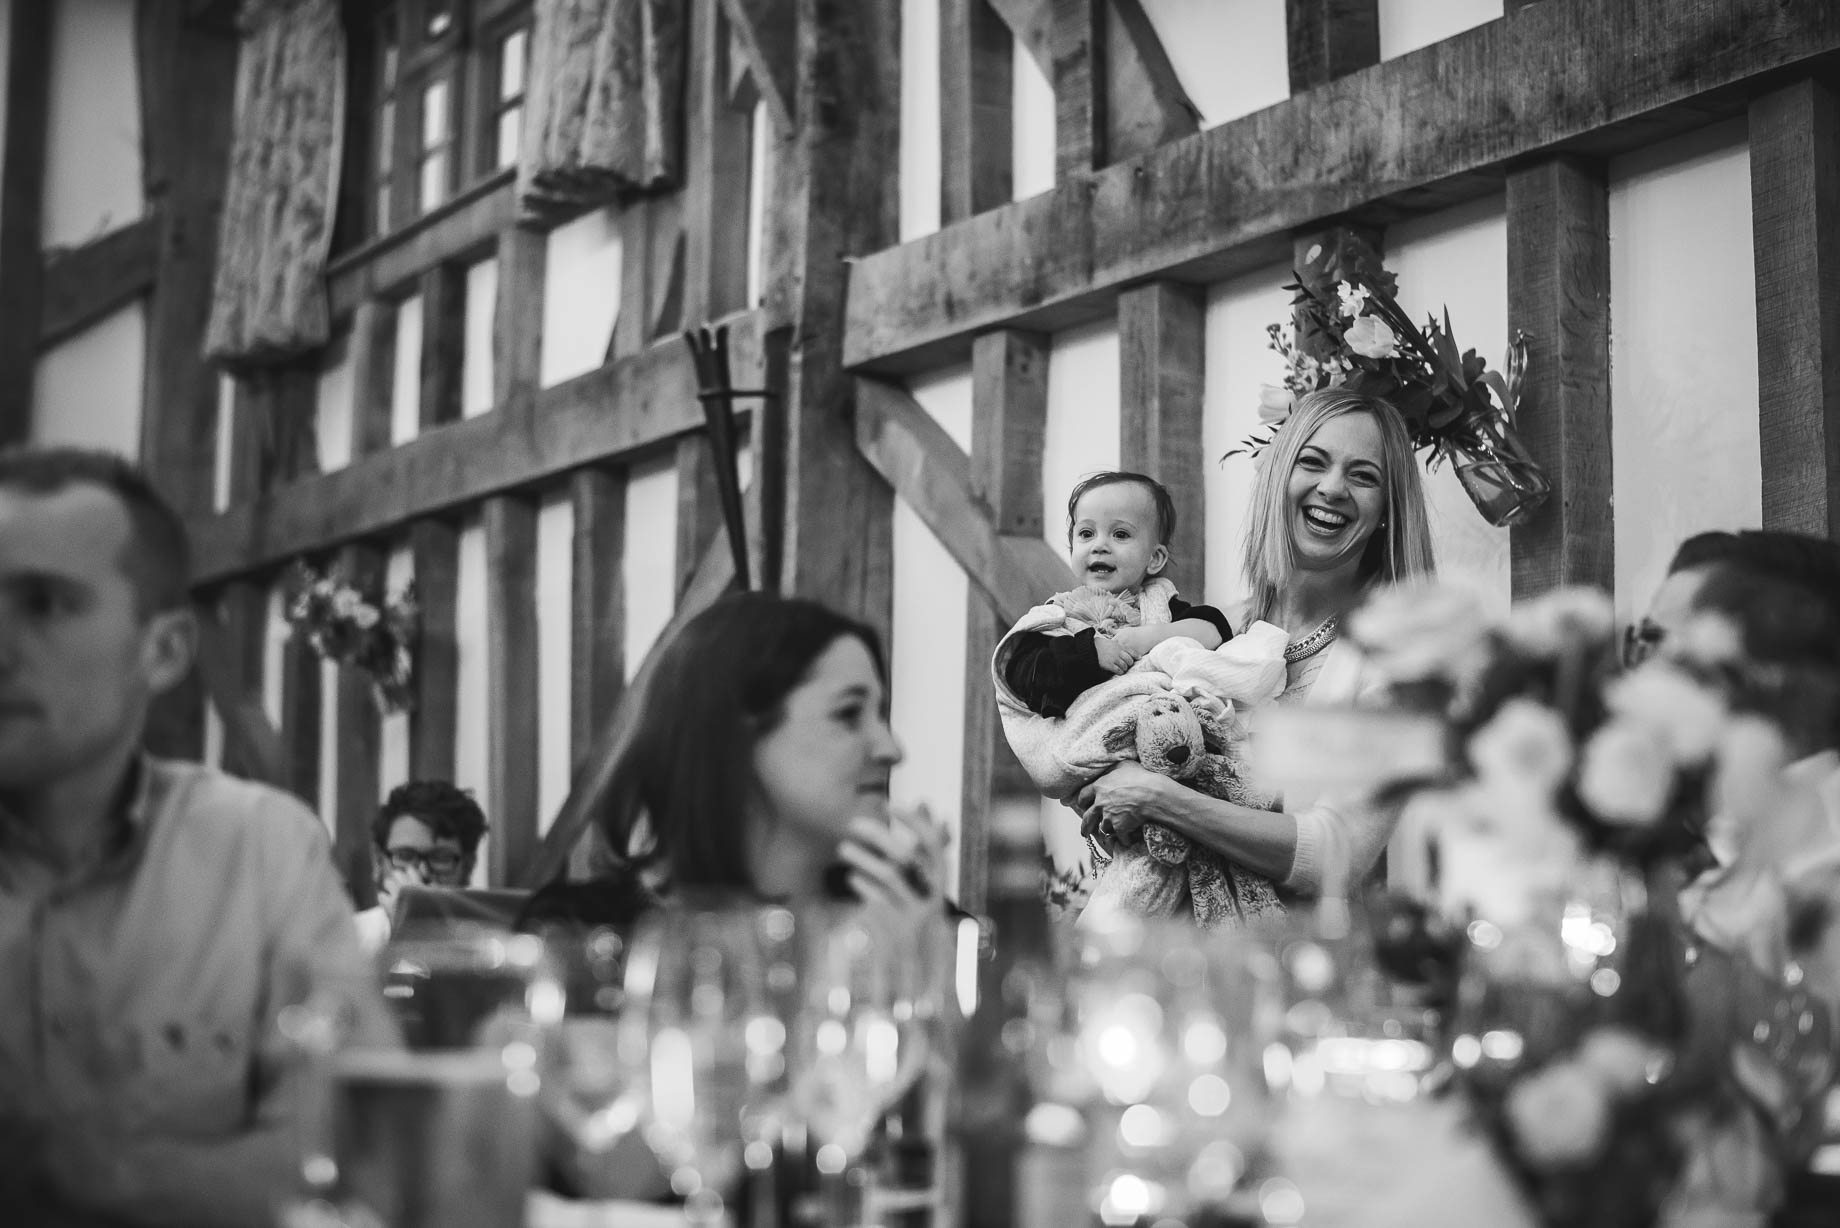 Surrey Wedding Photography by Guy Collier - Becca and James (121 of 145)